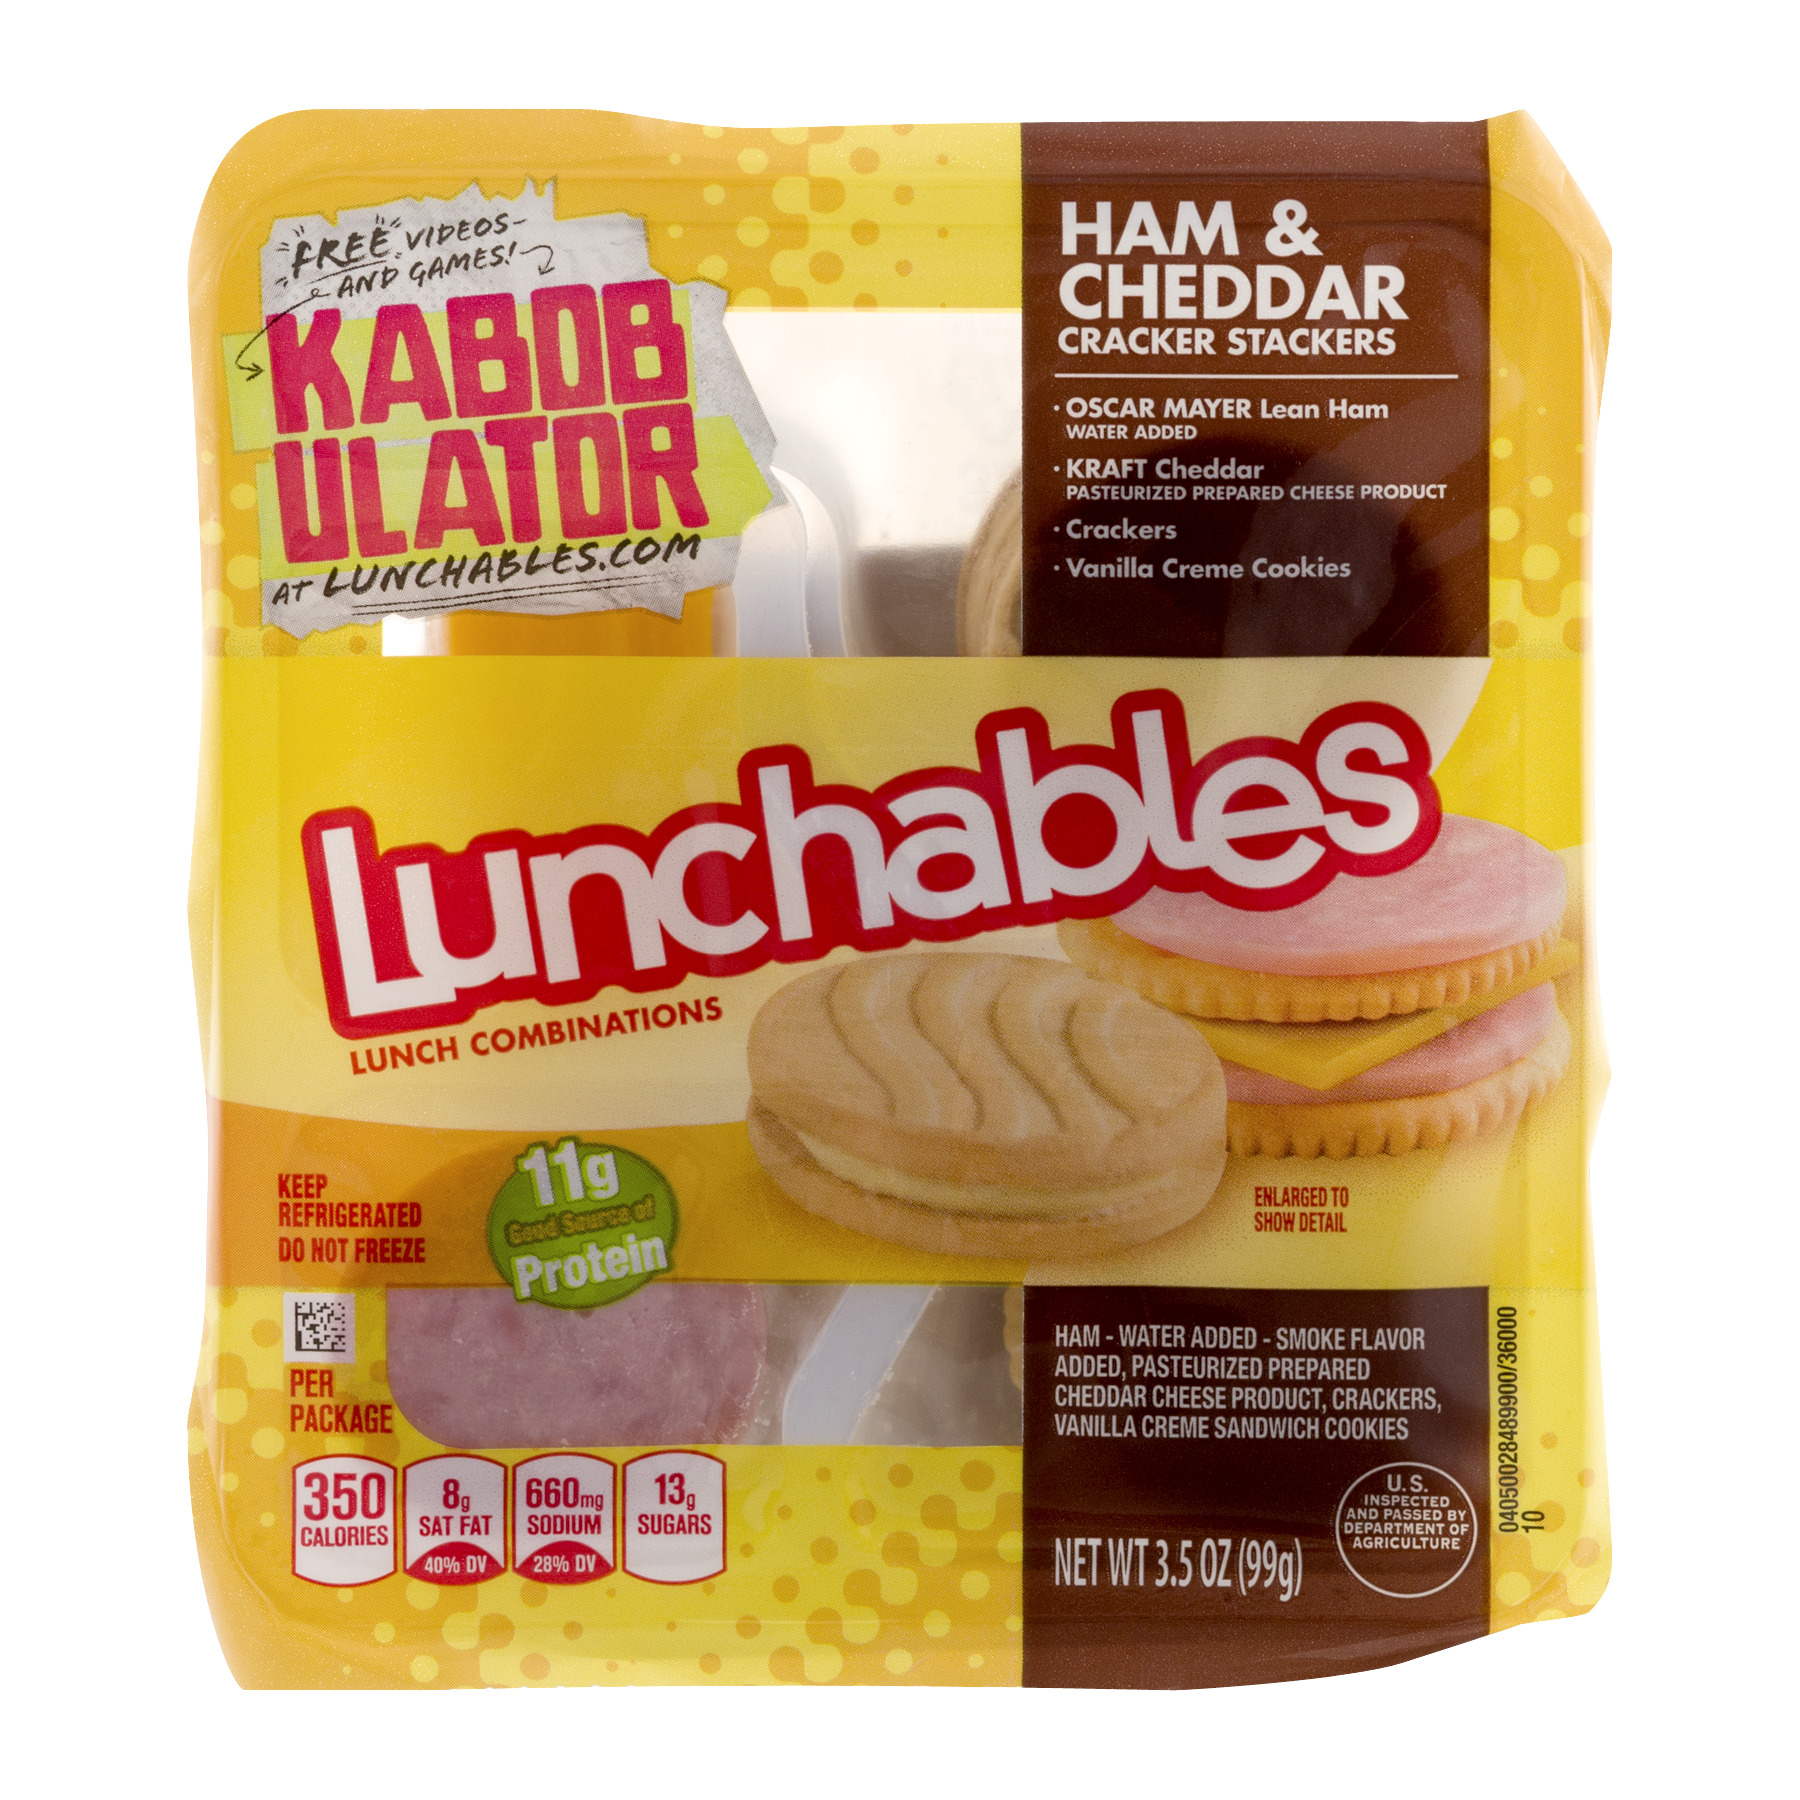 Lunchables Ham & Cheddar Cracker Stackers Lunch Combination 3.5 oz. Tray